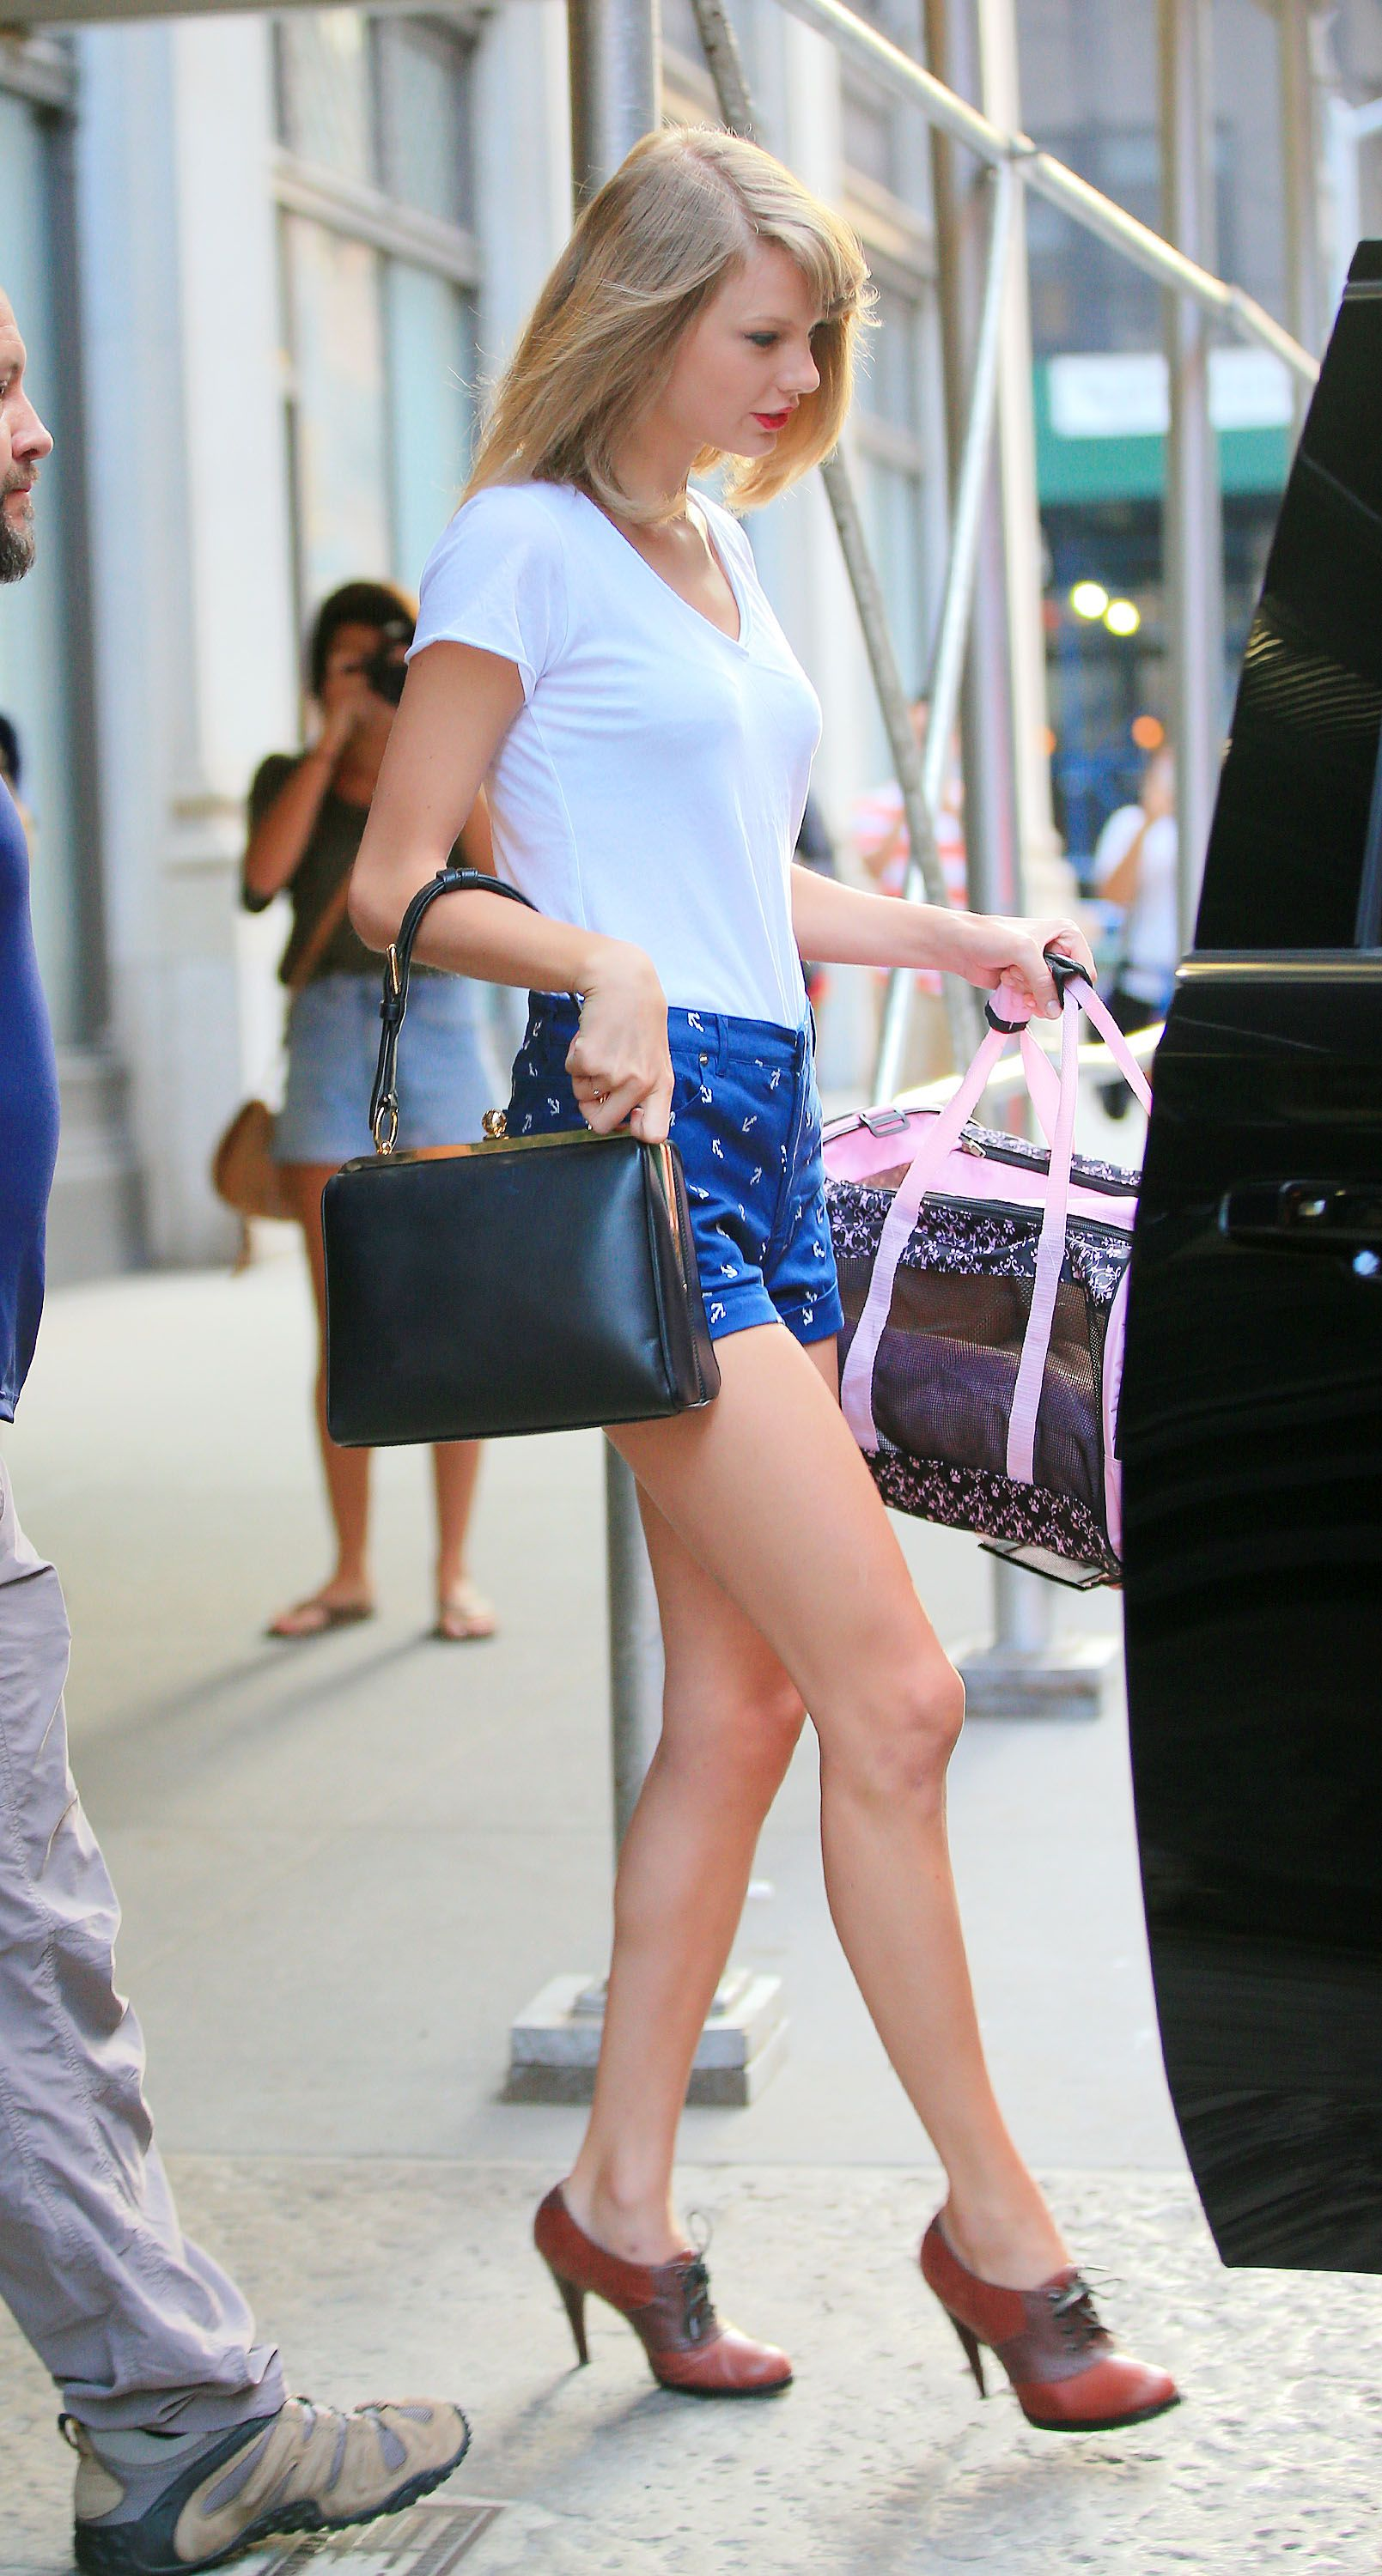 Pin by Paul Smith on Taylor Swift | Taylor swift legs ...